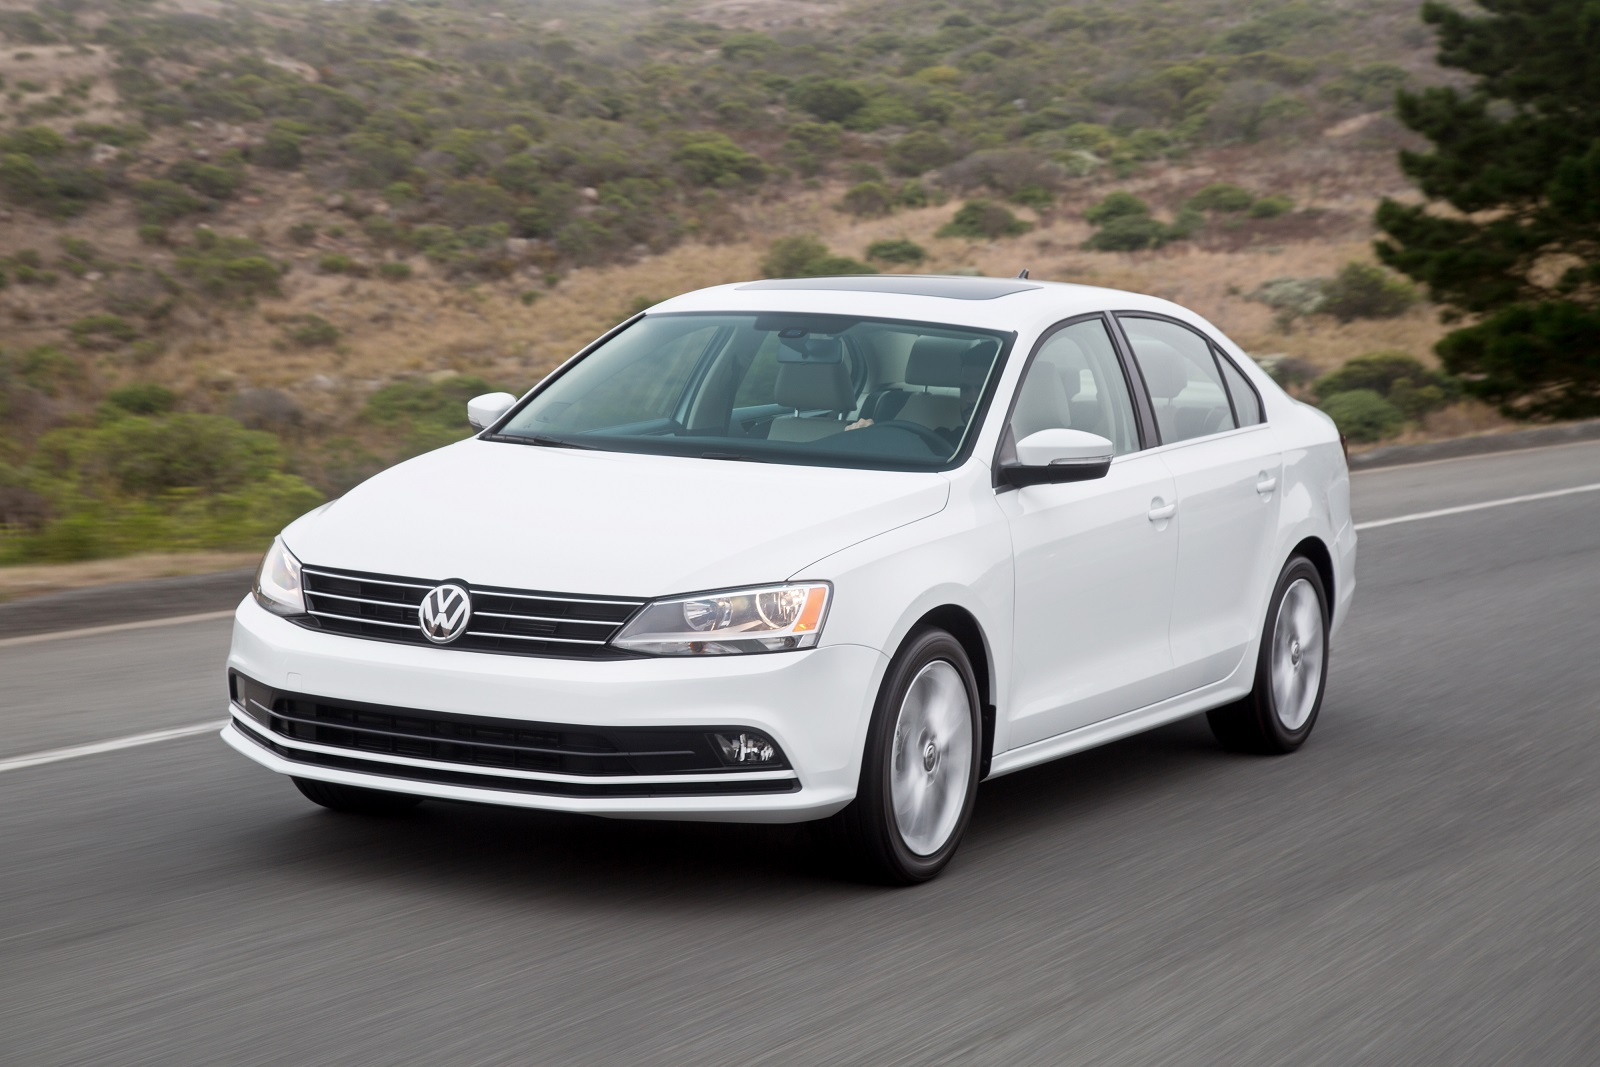 2016 volkswagen jetta vw review ratings specs prices and photos the car connection. Black Bedroom Furniture Sets. Home Design Ideas